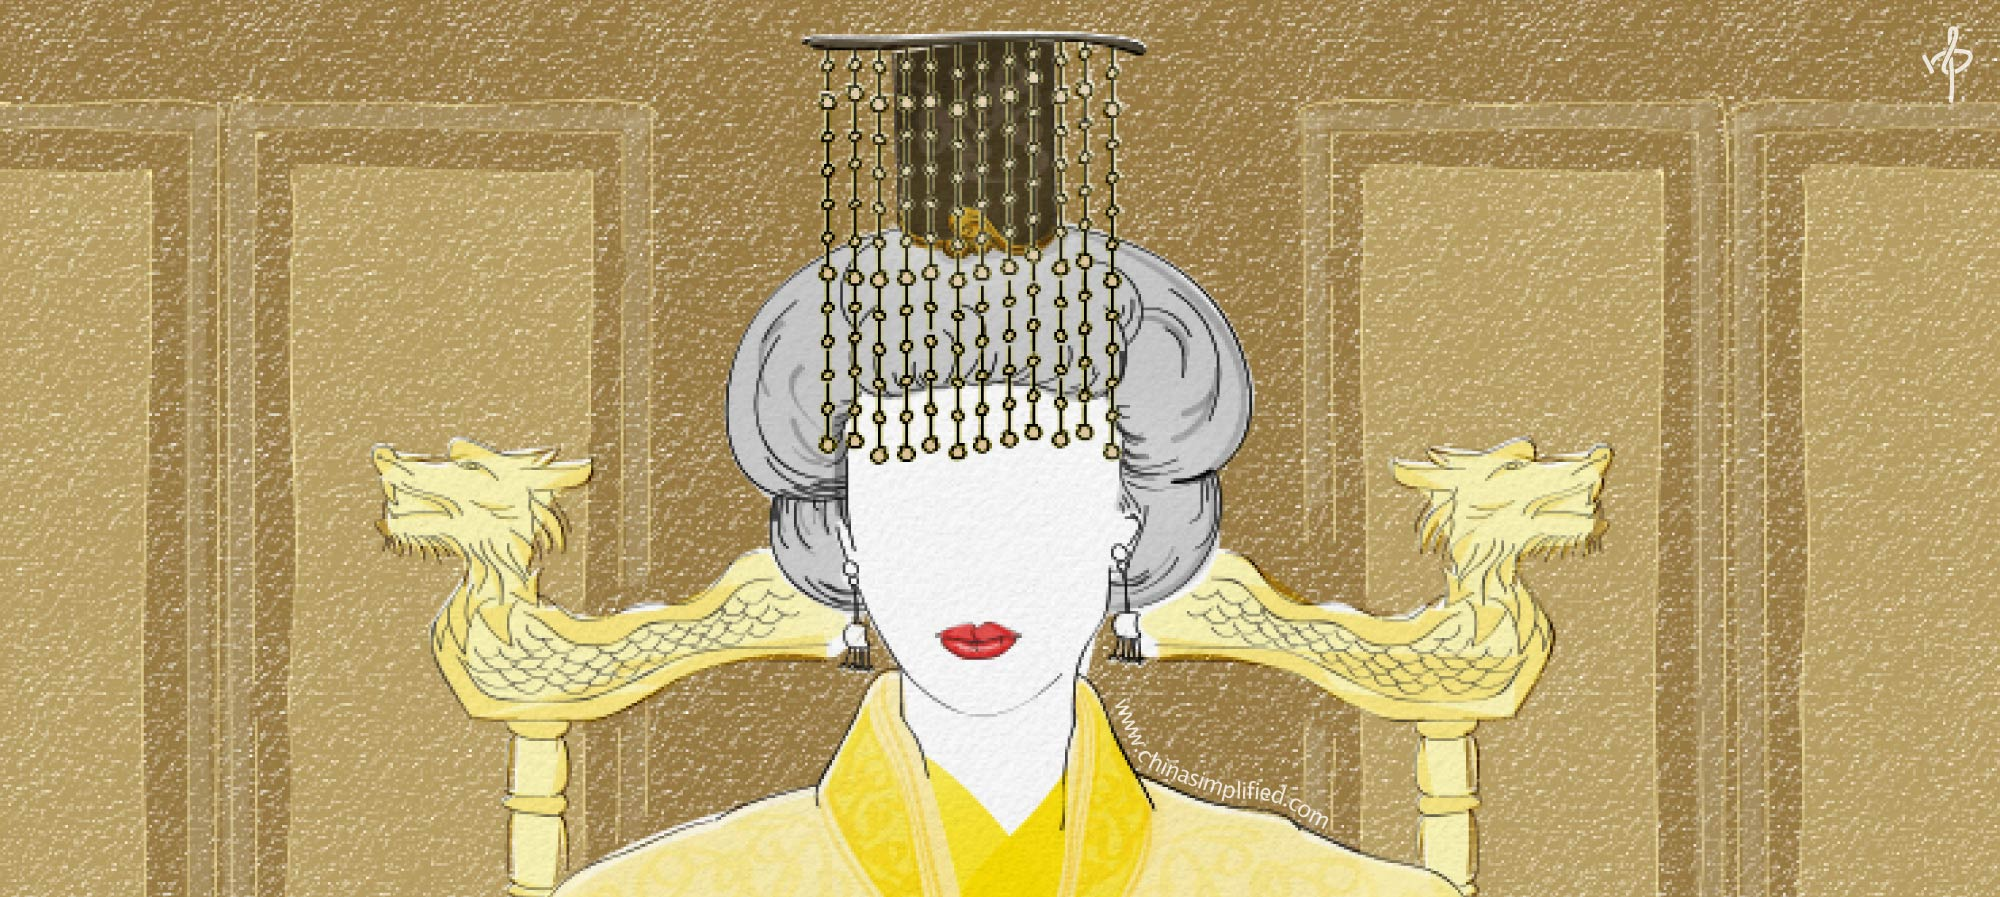 wu zetian (武则天) – china's only female emperor